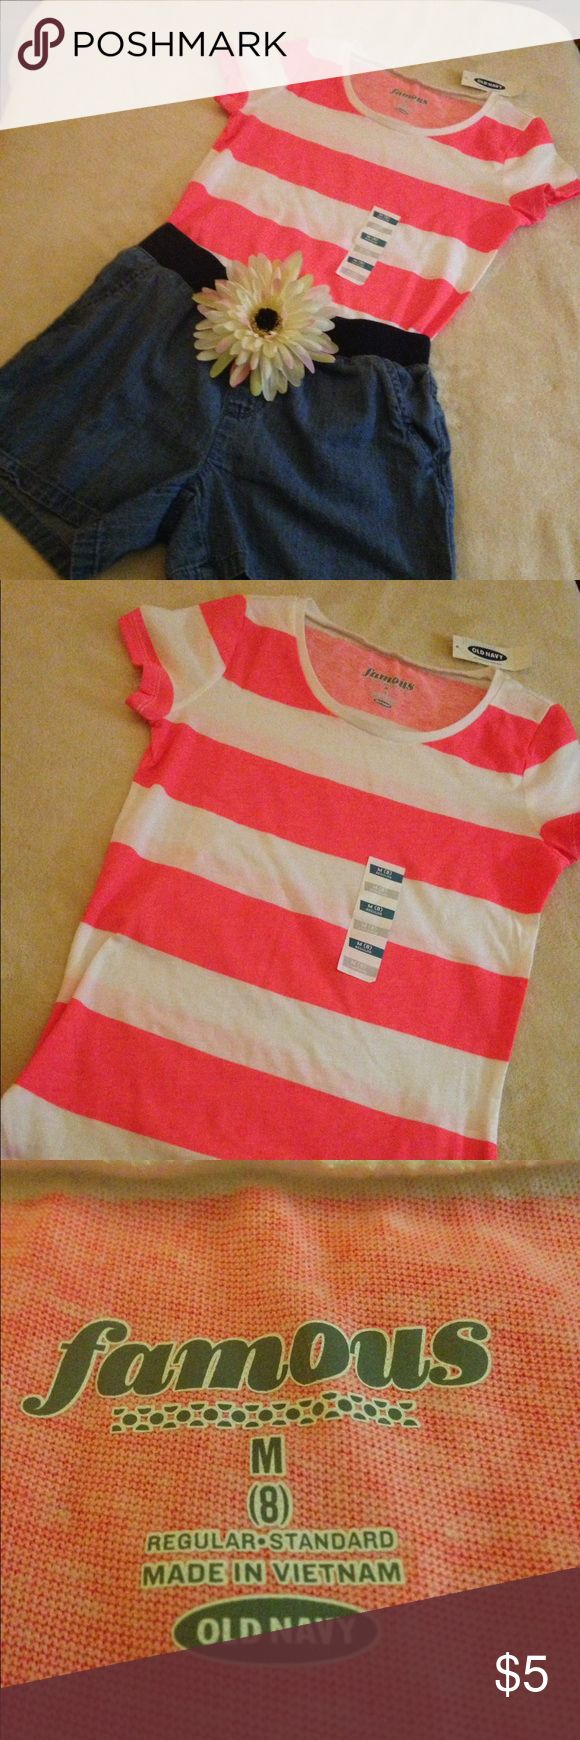 Pink and White Short Sleeve Top A girl can never have too many tops to coordinate with her bottoms This striped, shirt sleeve top is just right for jeans, pants, shorts, and skirts! 100% Cotton Old Navy Shirts & Tops Tees - Short Sleeve